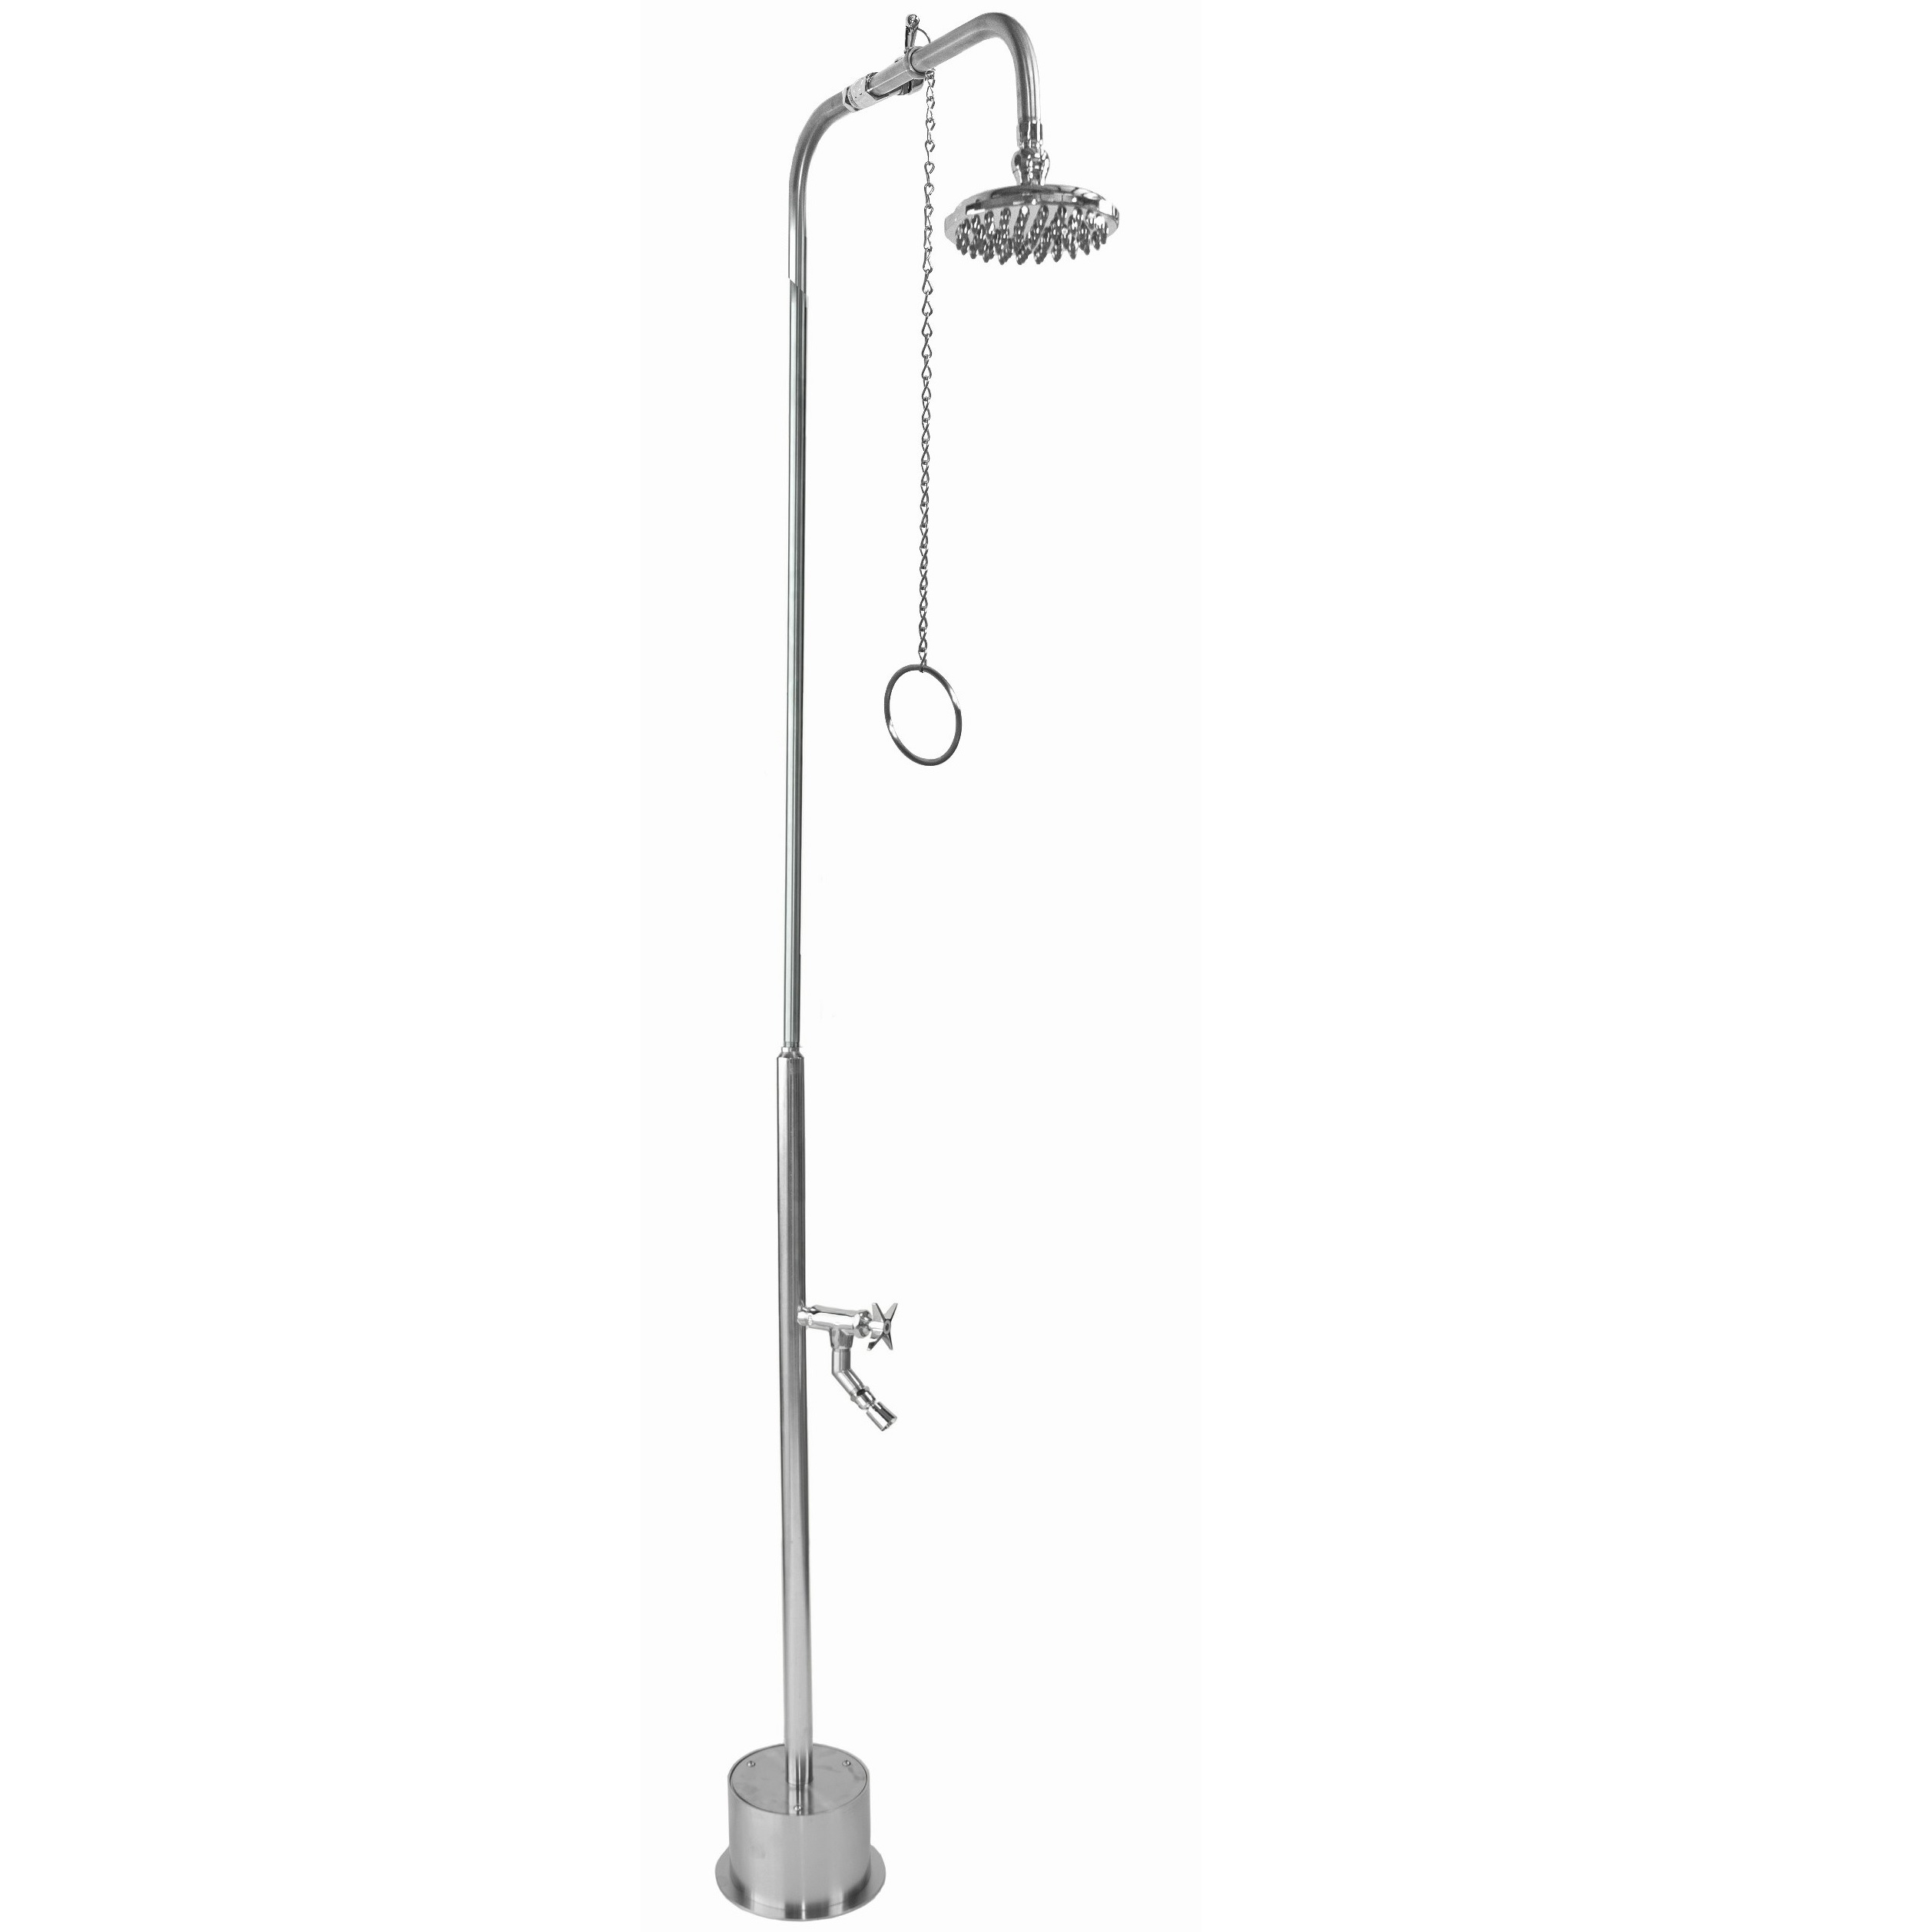 Outdoor Shower Company BS-1200-PCV-CHV Free Standing Single Supply Shower